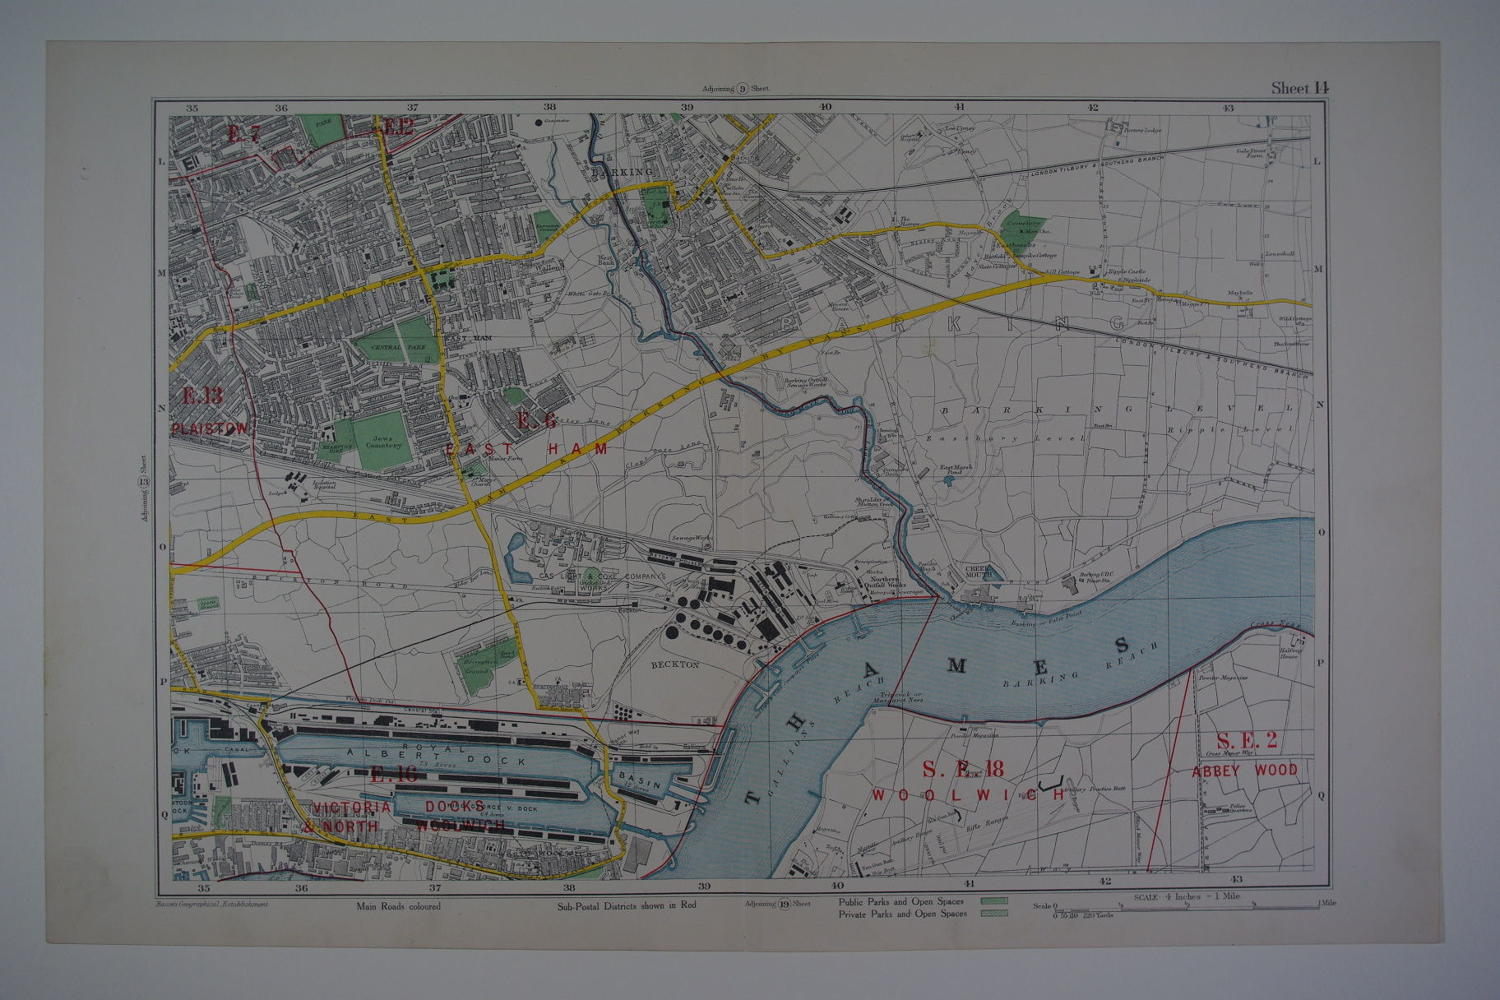 London: East HamE.16 Victoria Docks & North Woolwich/Abbey Wood by George Washington Bacon